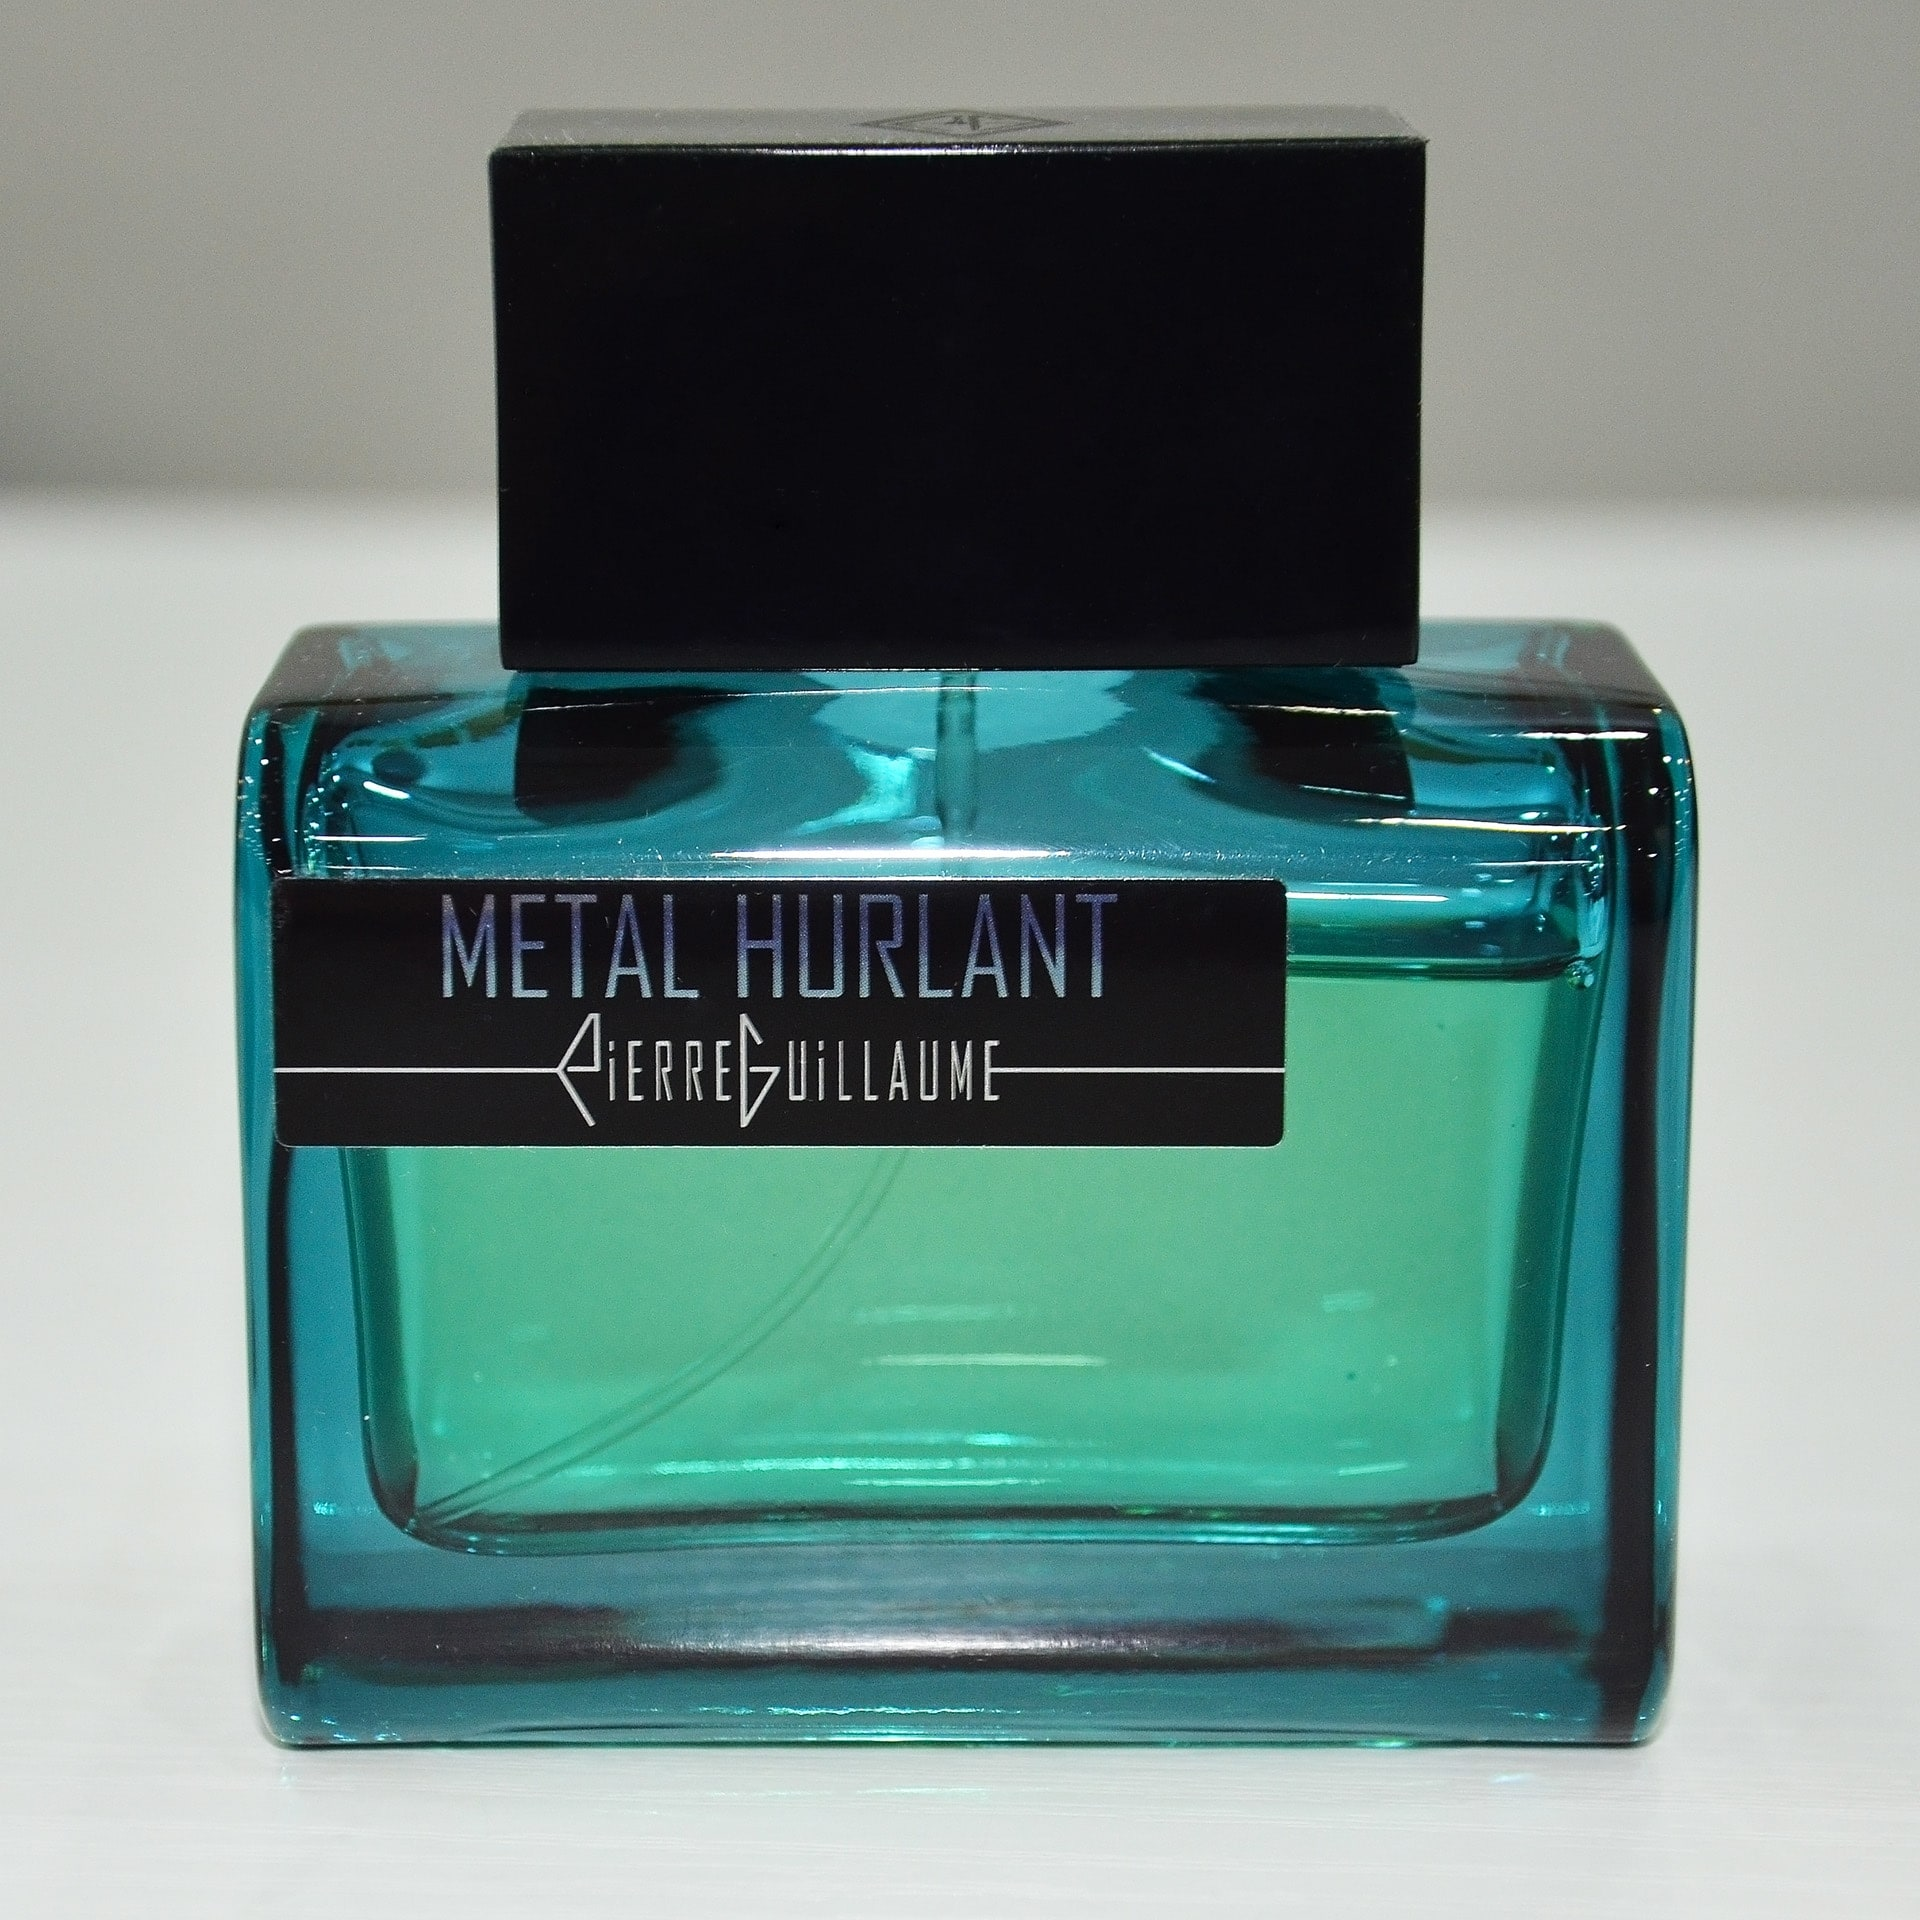 Ароматы Pierre Guillaume Collection Croisiere Metal Hurlant